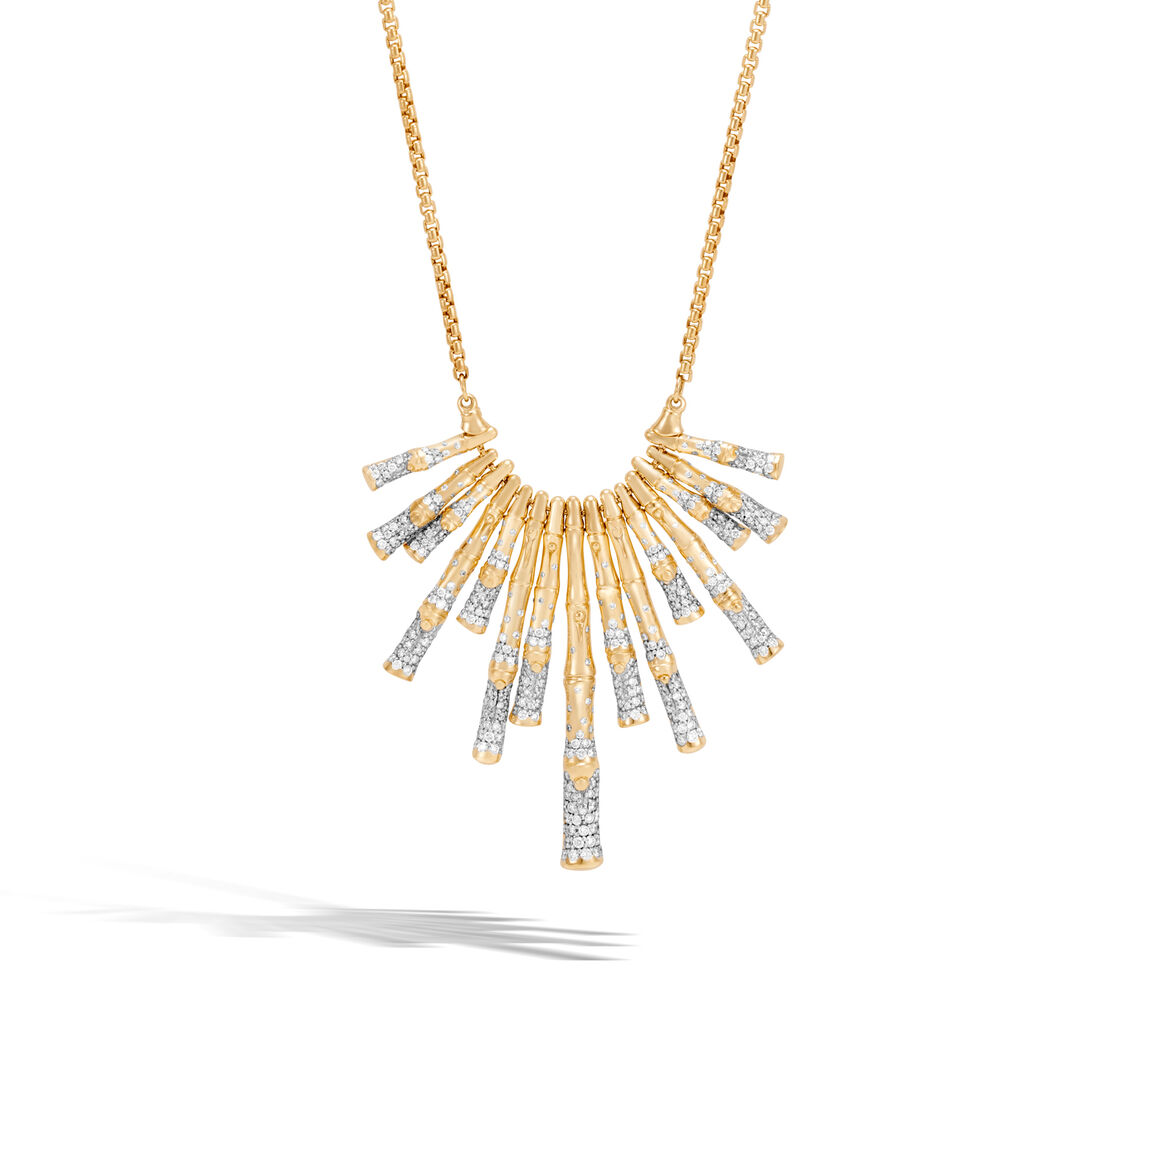 Bamboo Bib Necklace in 18K Gold with Diamonds